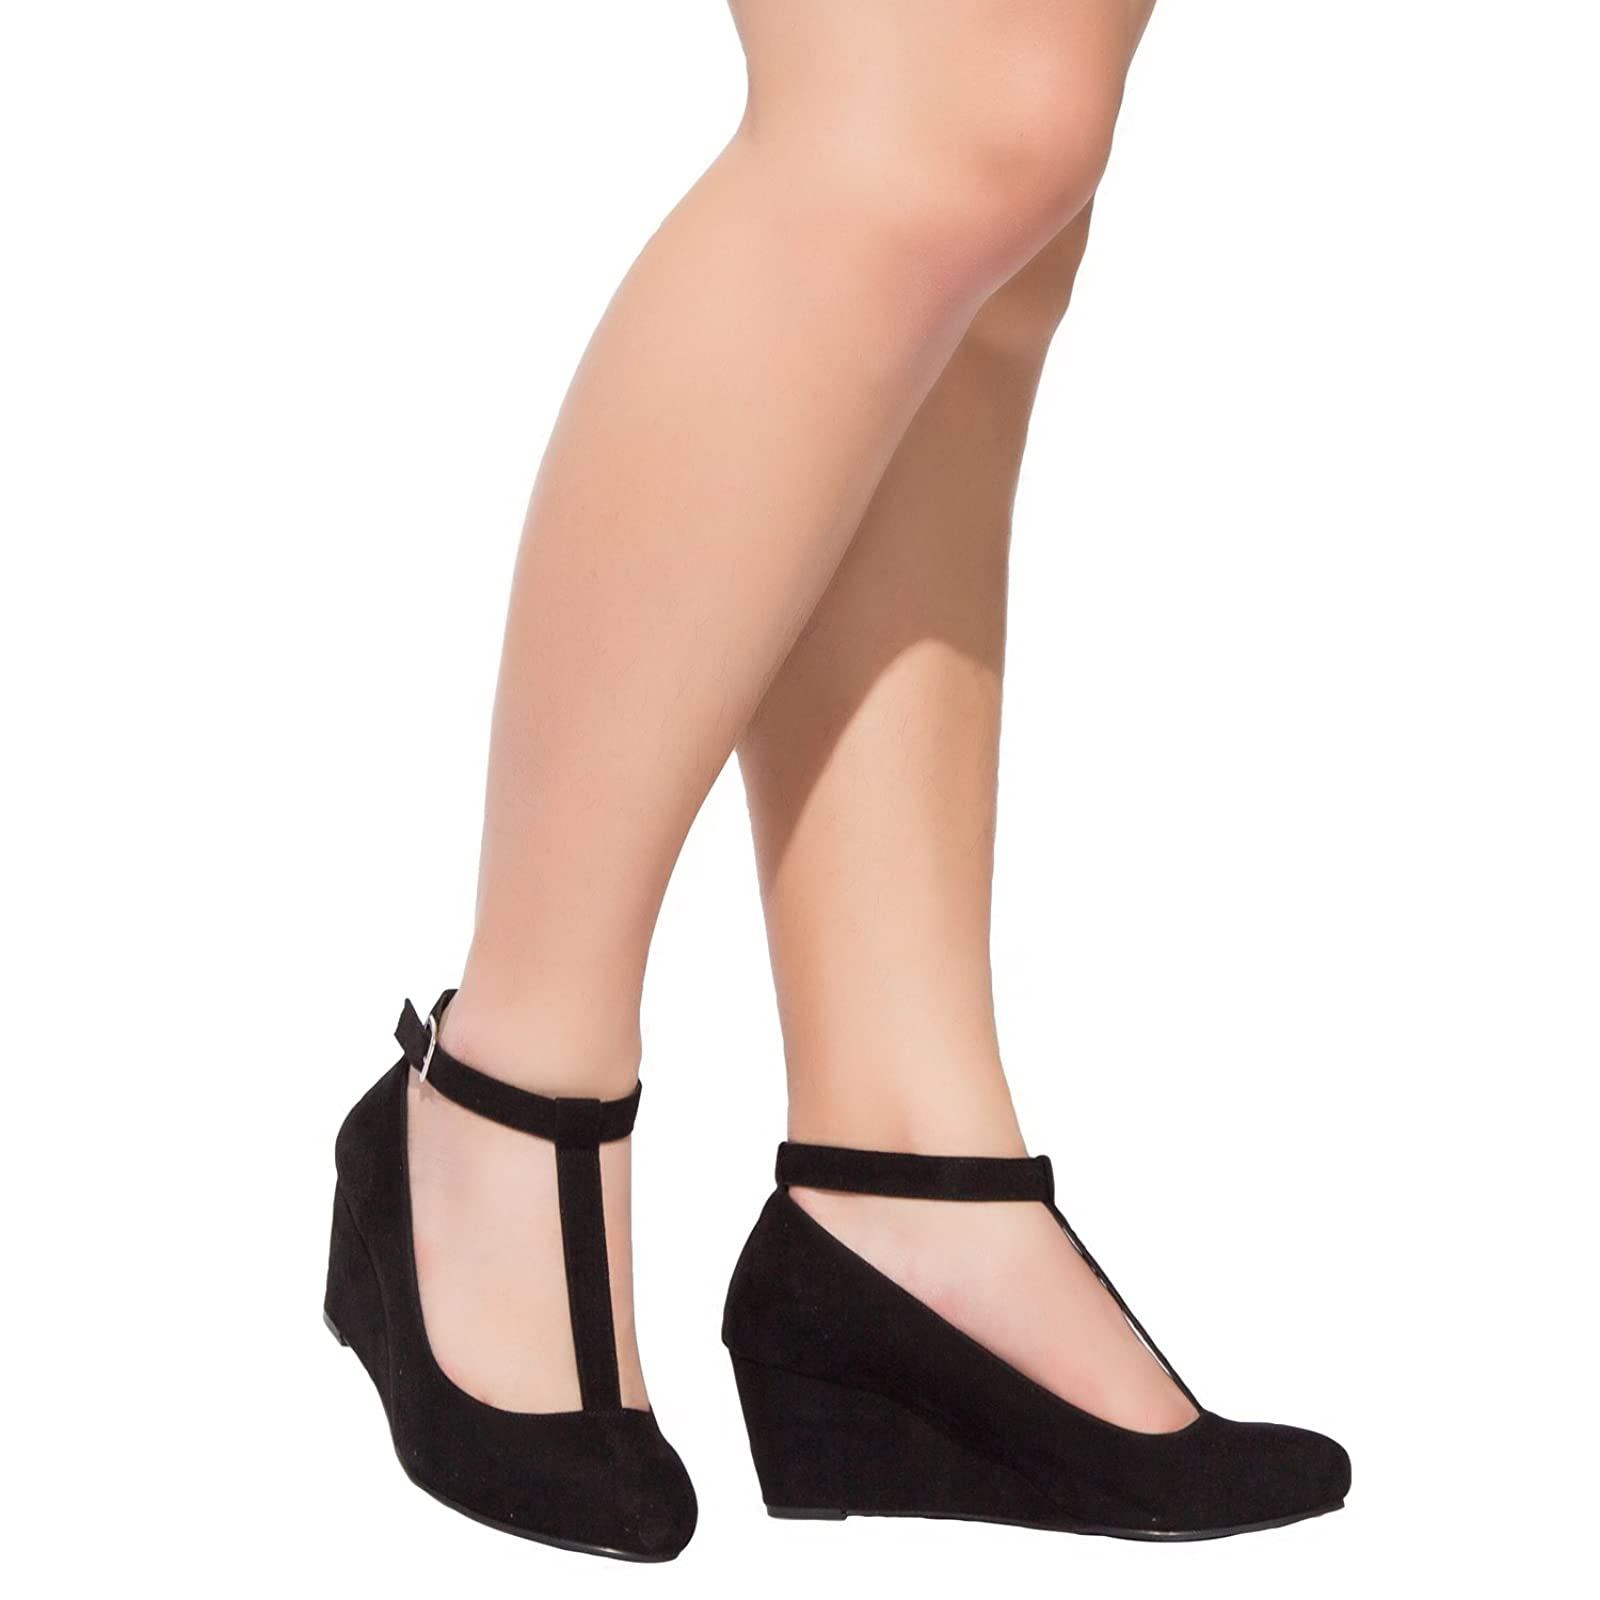 Luoika Women's Wide Width Wedge Shoes - Black 6 W(W)US - 1